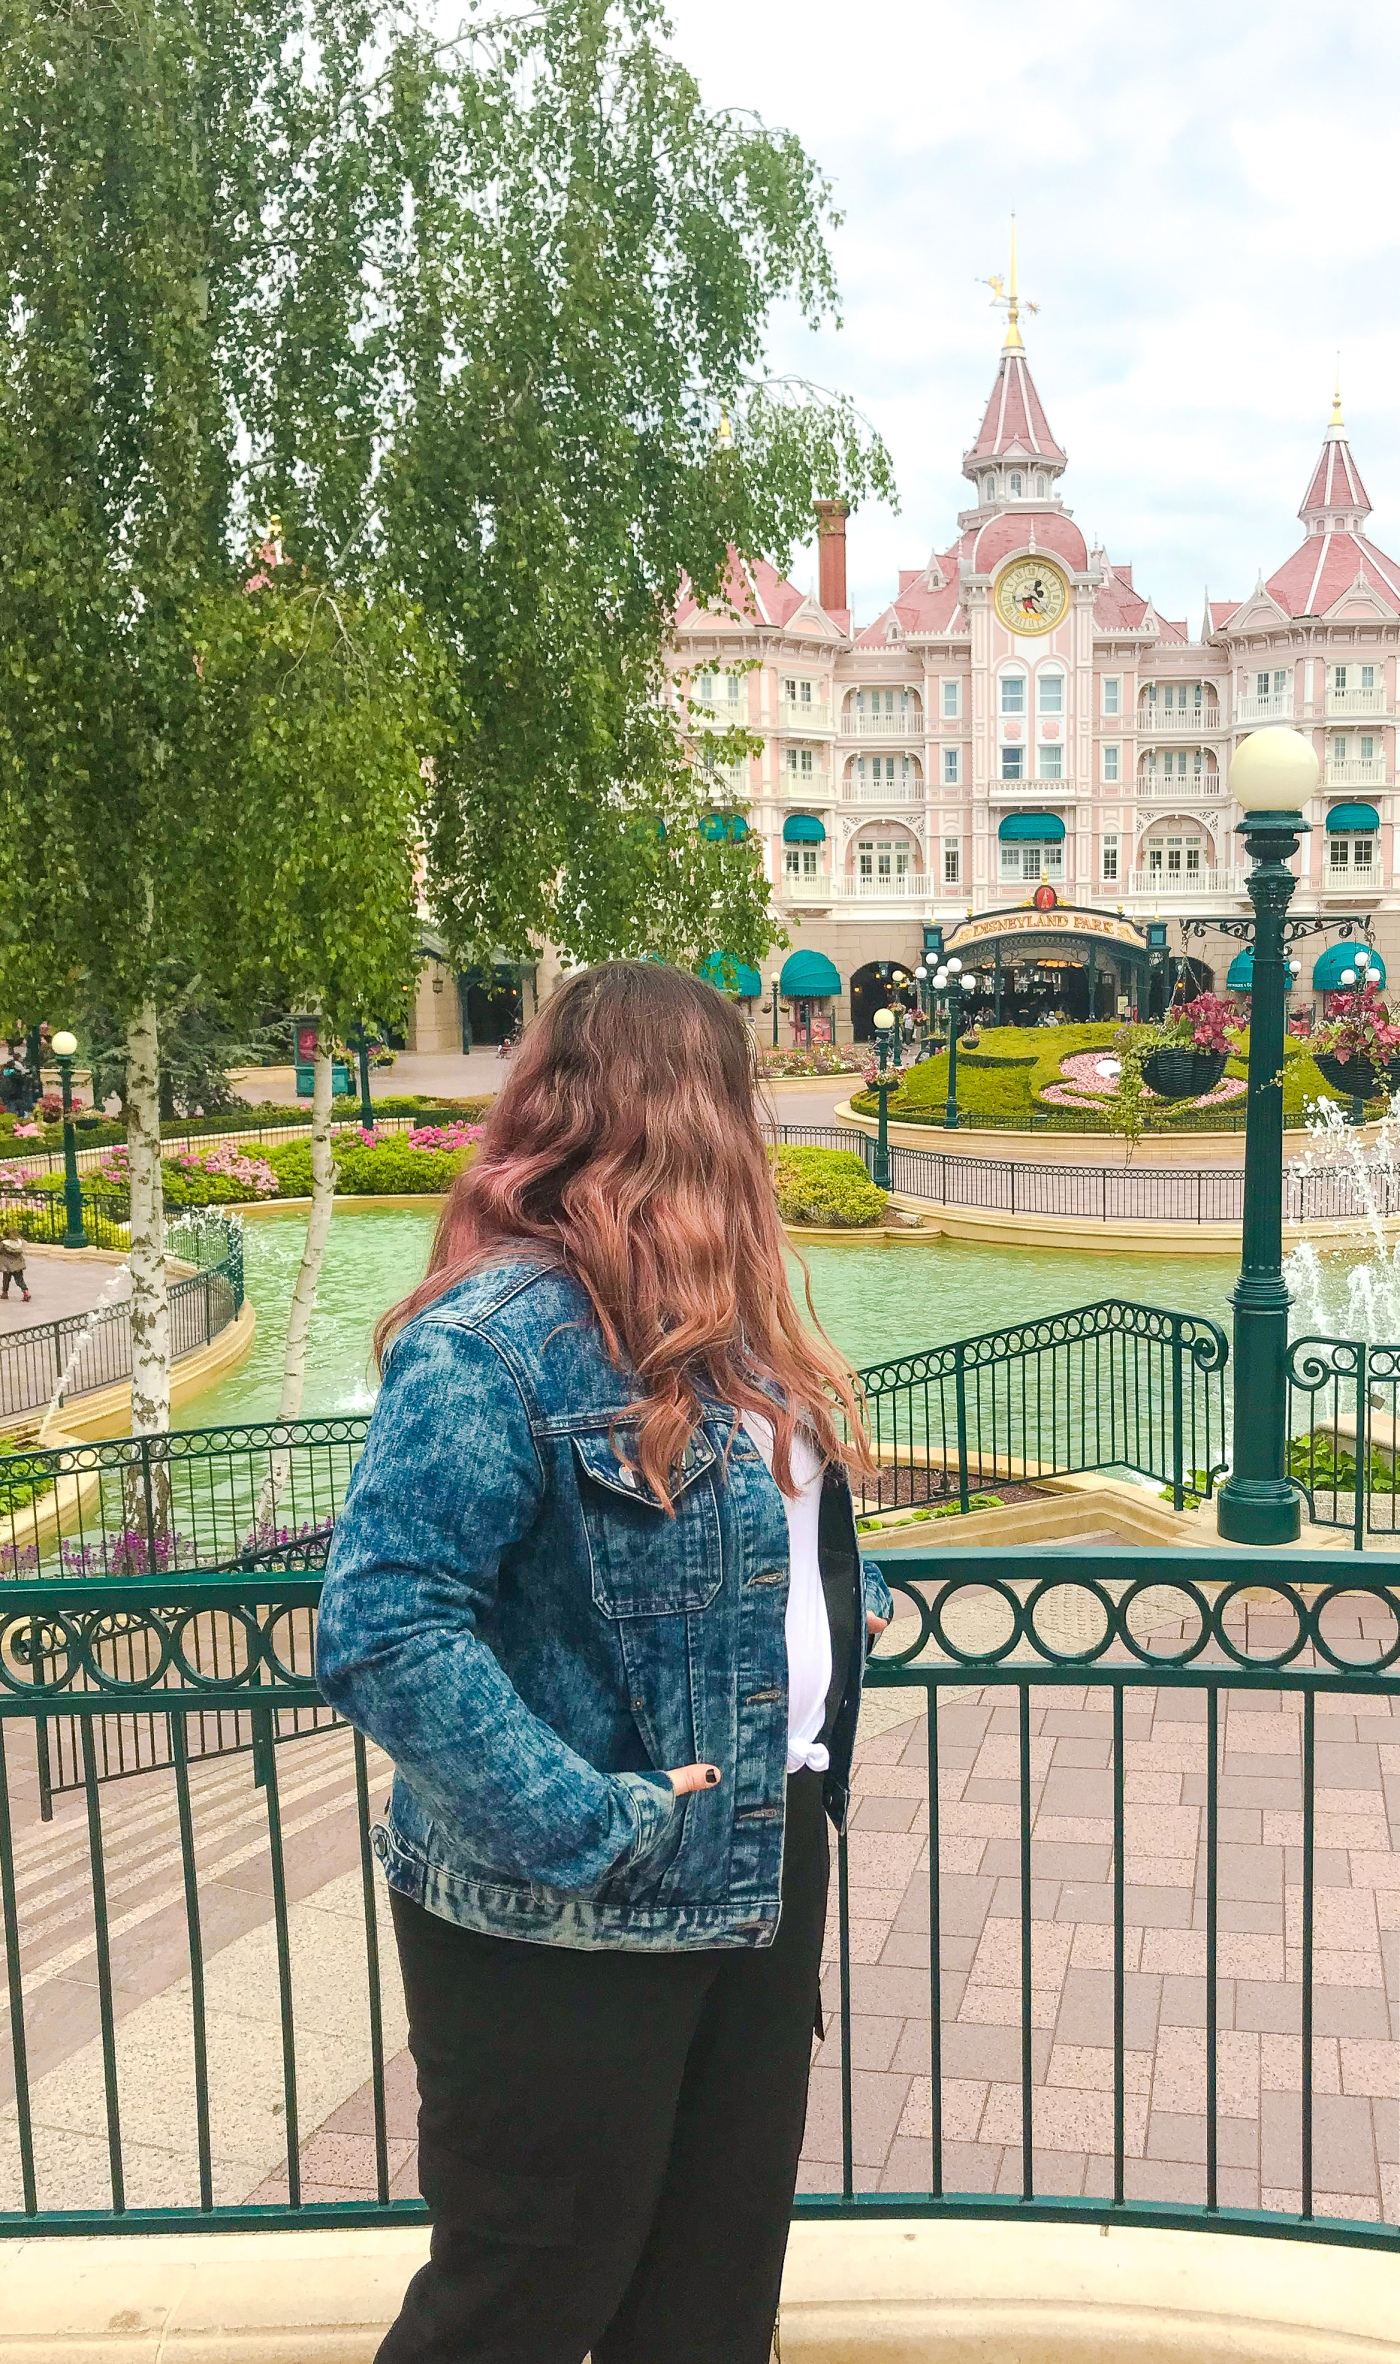 Standing alone at the entrance to Disneyland Paris